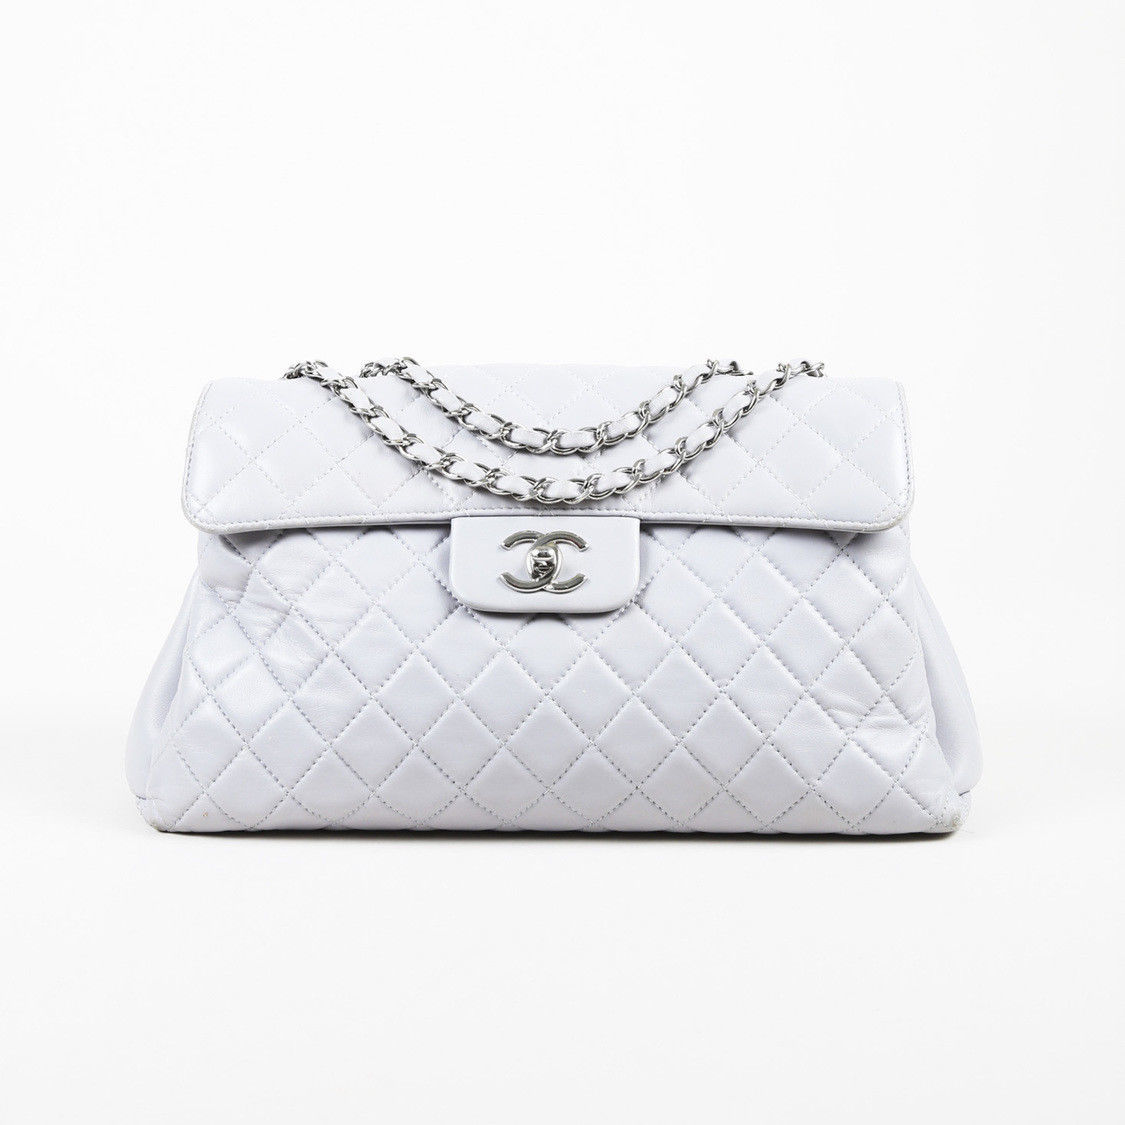 8c1193bfe1e5 Chanel Gray Quilted Leather Flap Bag and 47 similar items